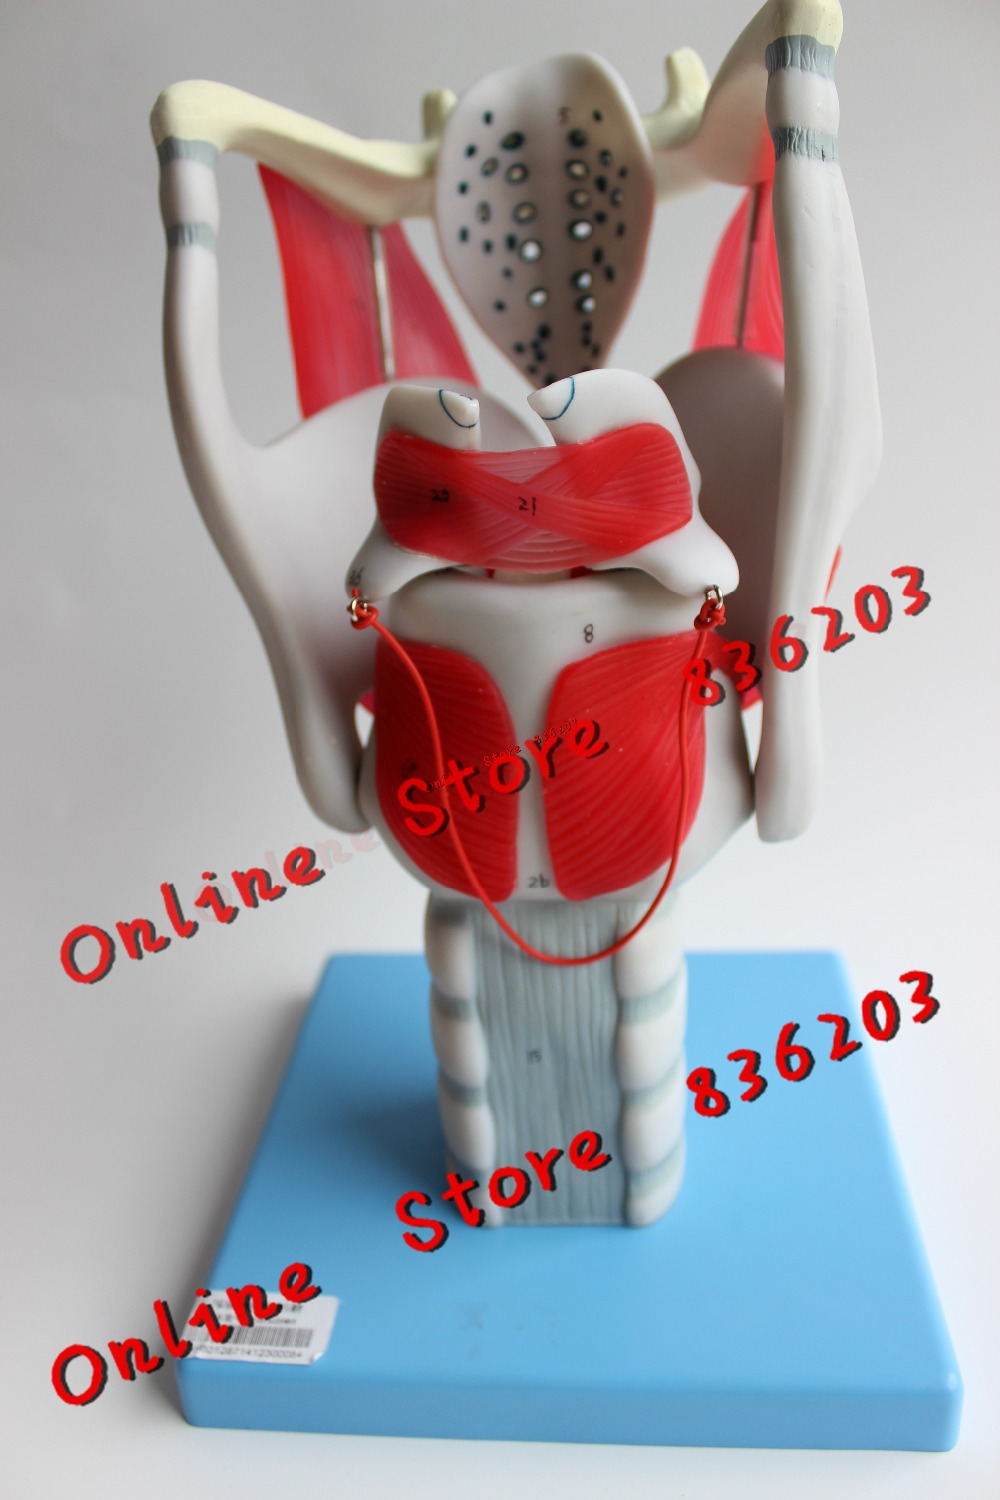 Buy Anatomy Functions And Get Free Shipping On Aliexpress